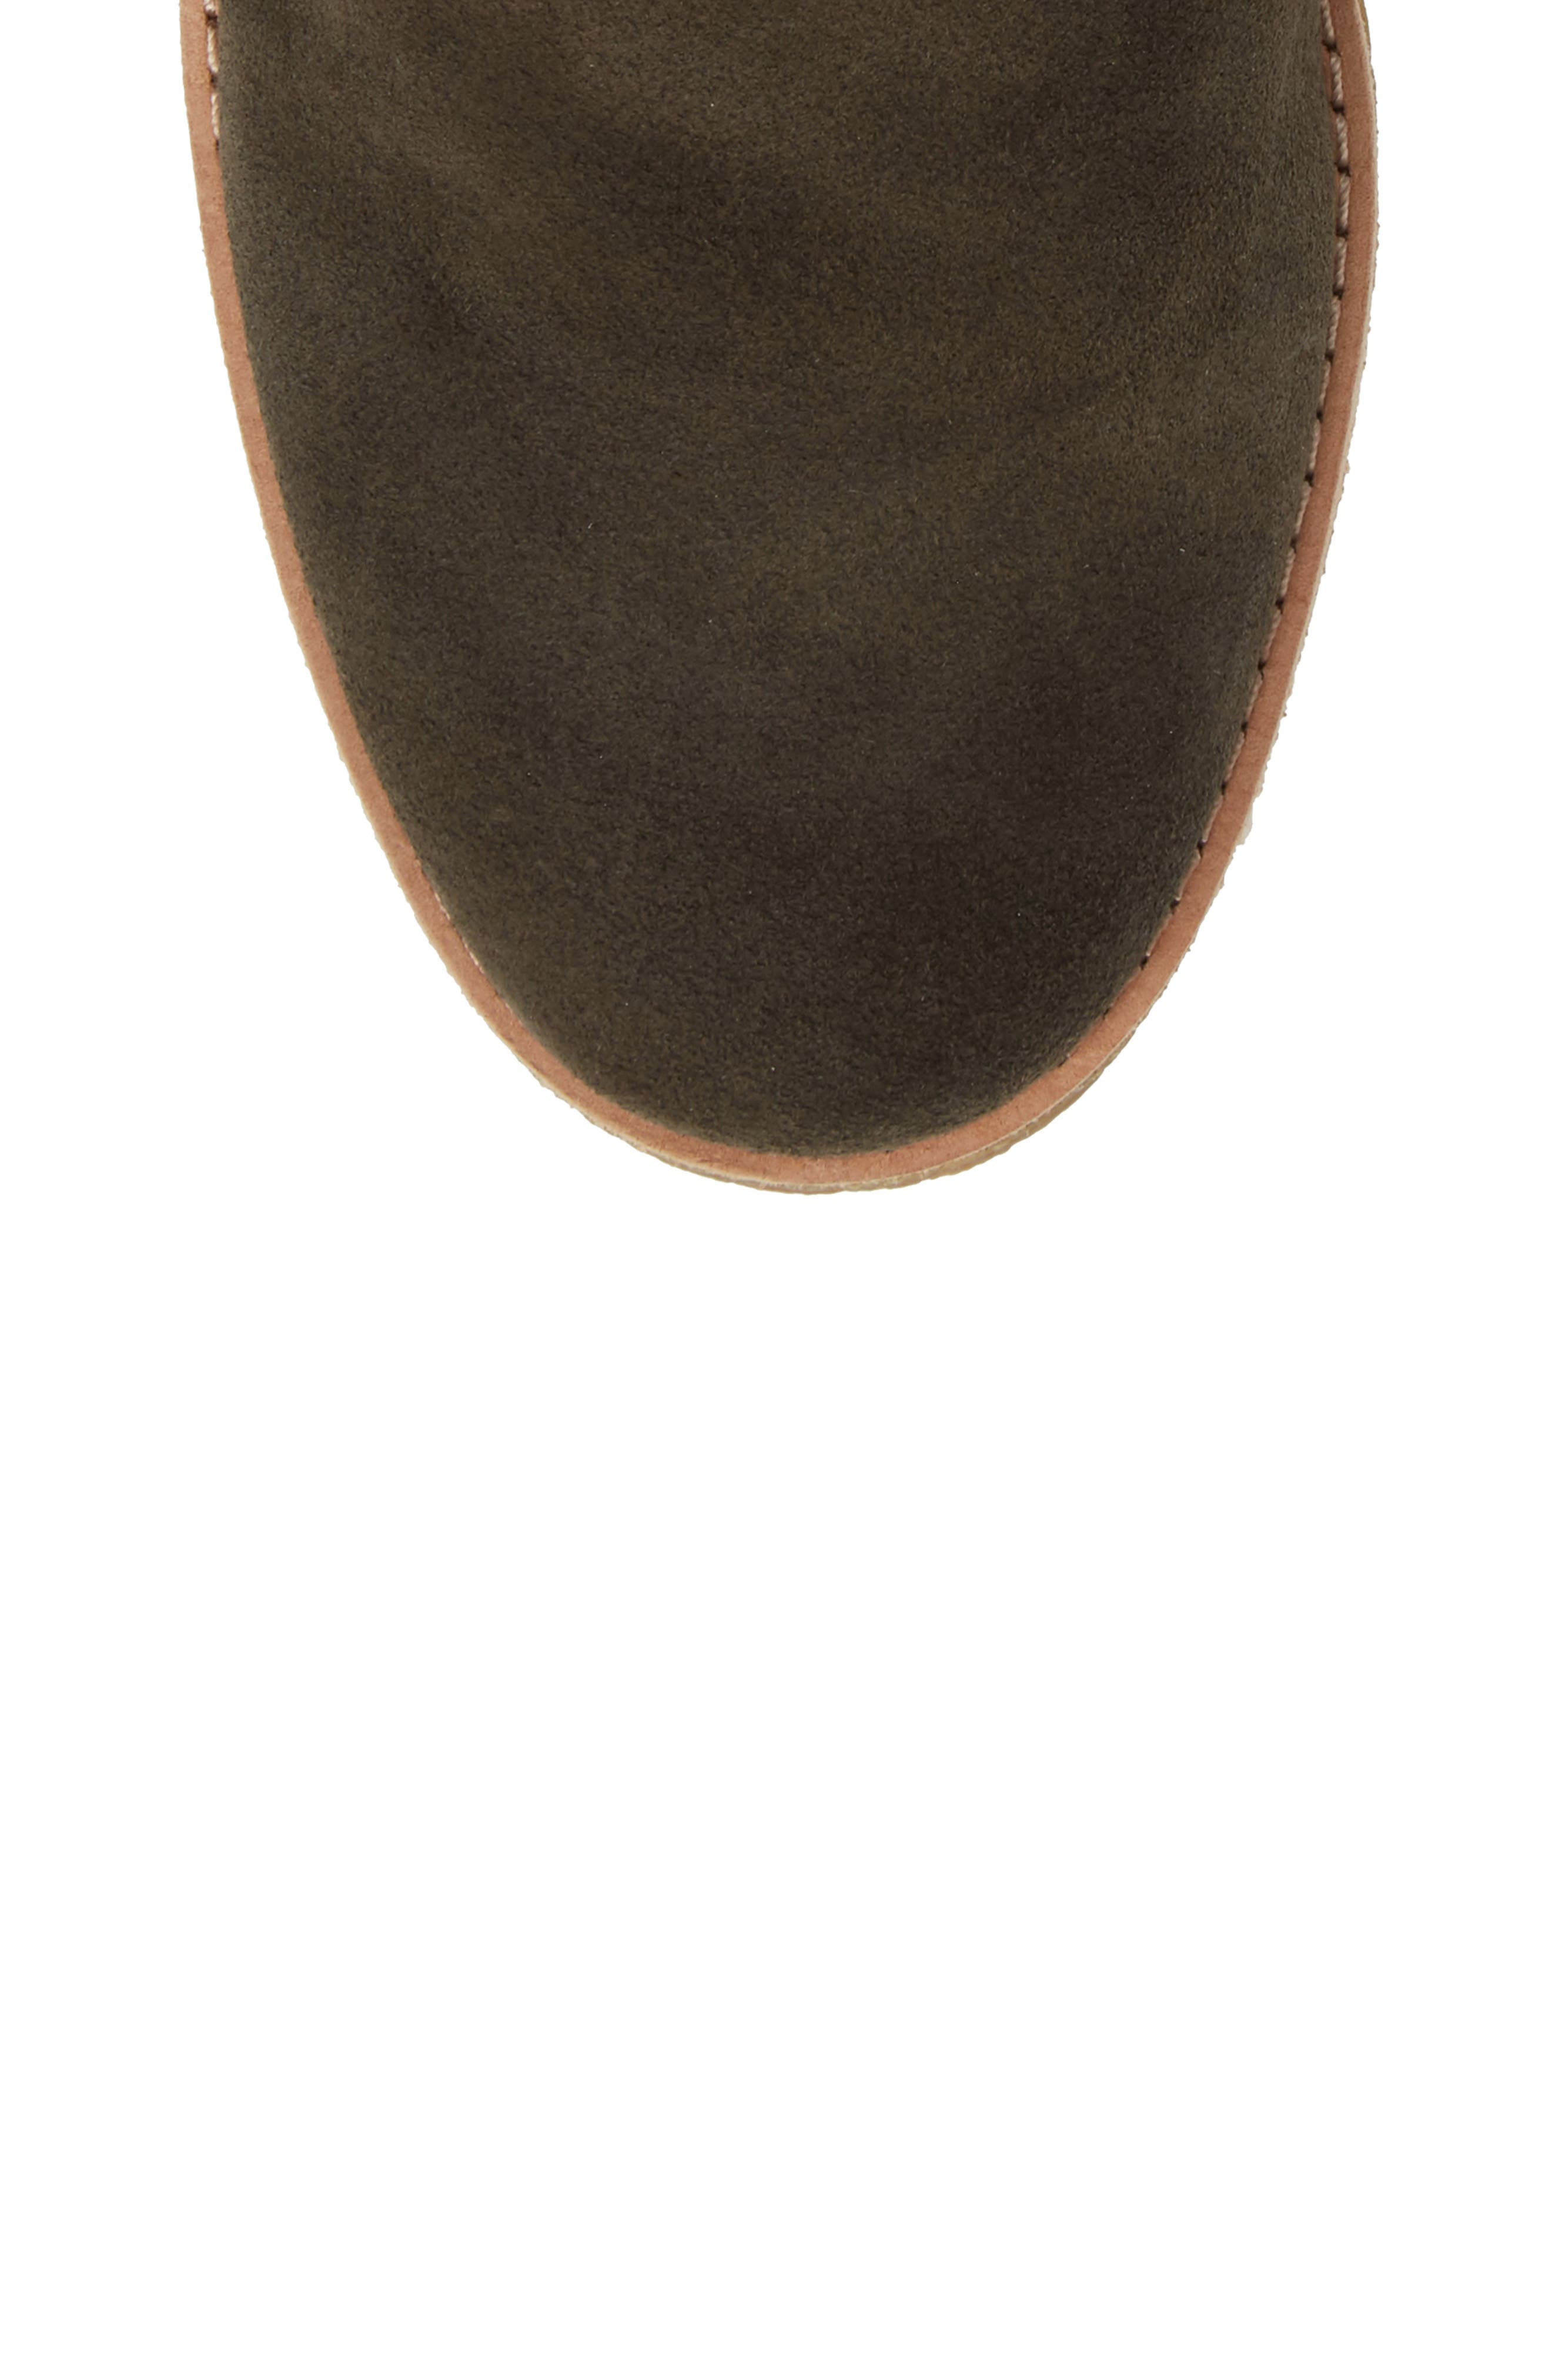 barrow chukka boot,                             Alternate thumbnail 5, color,                             Olive Green Suede